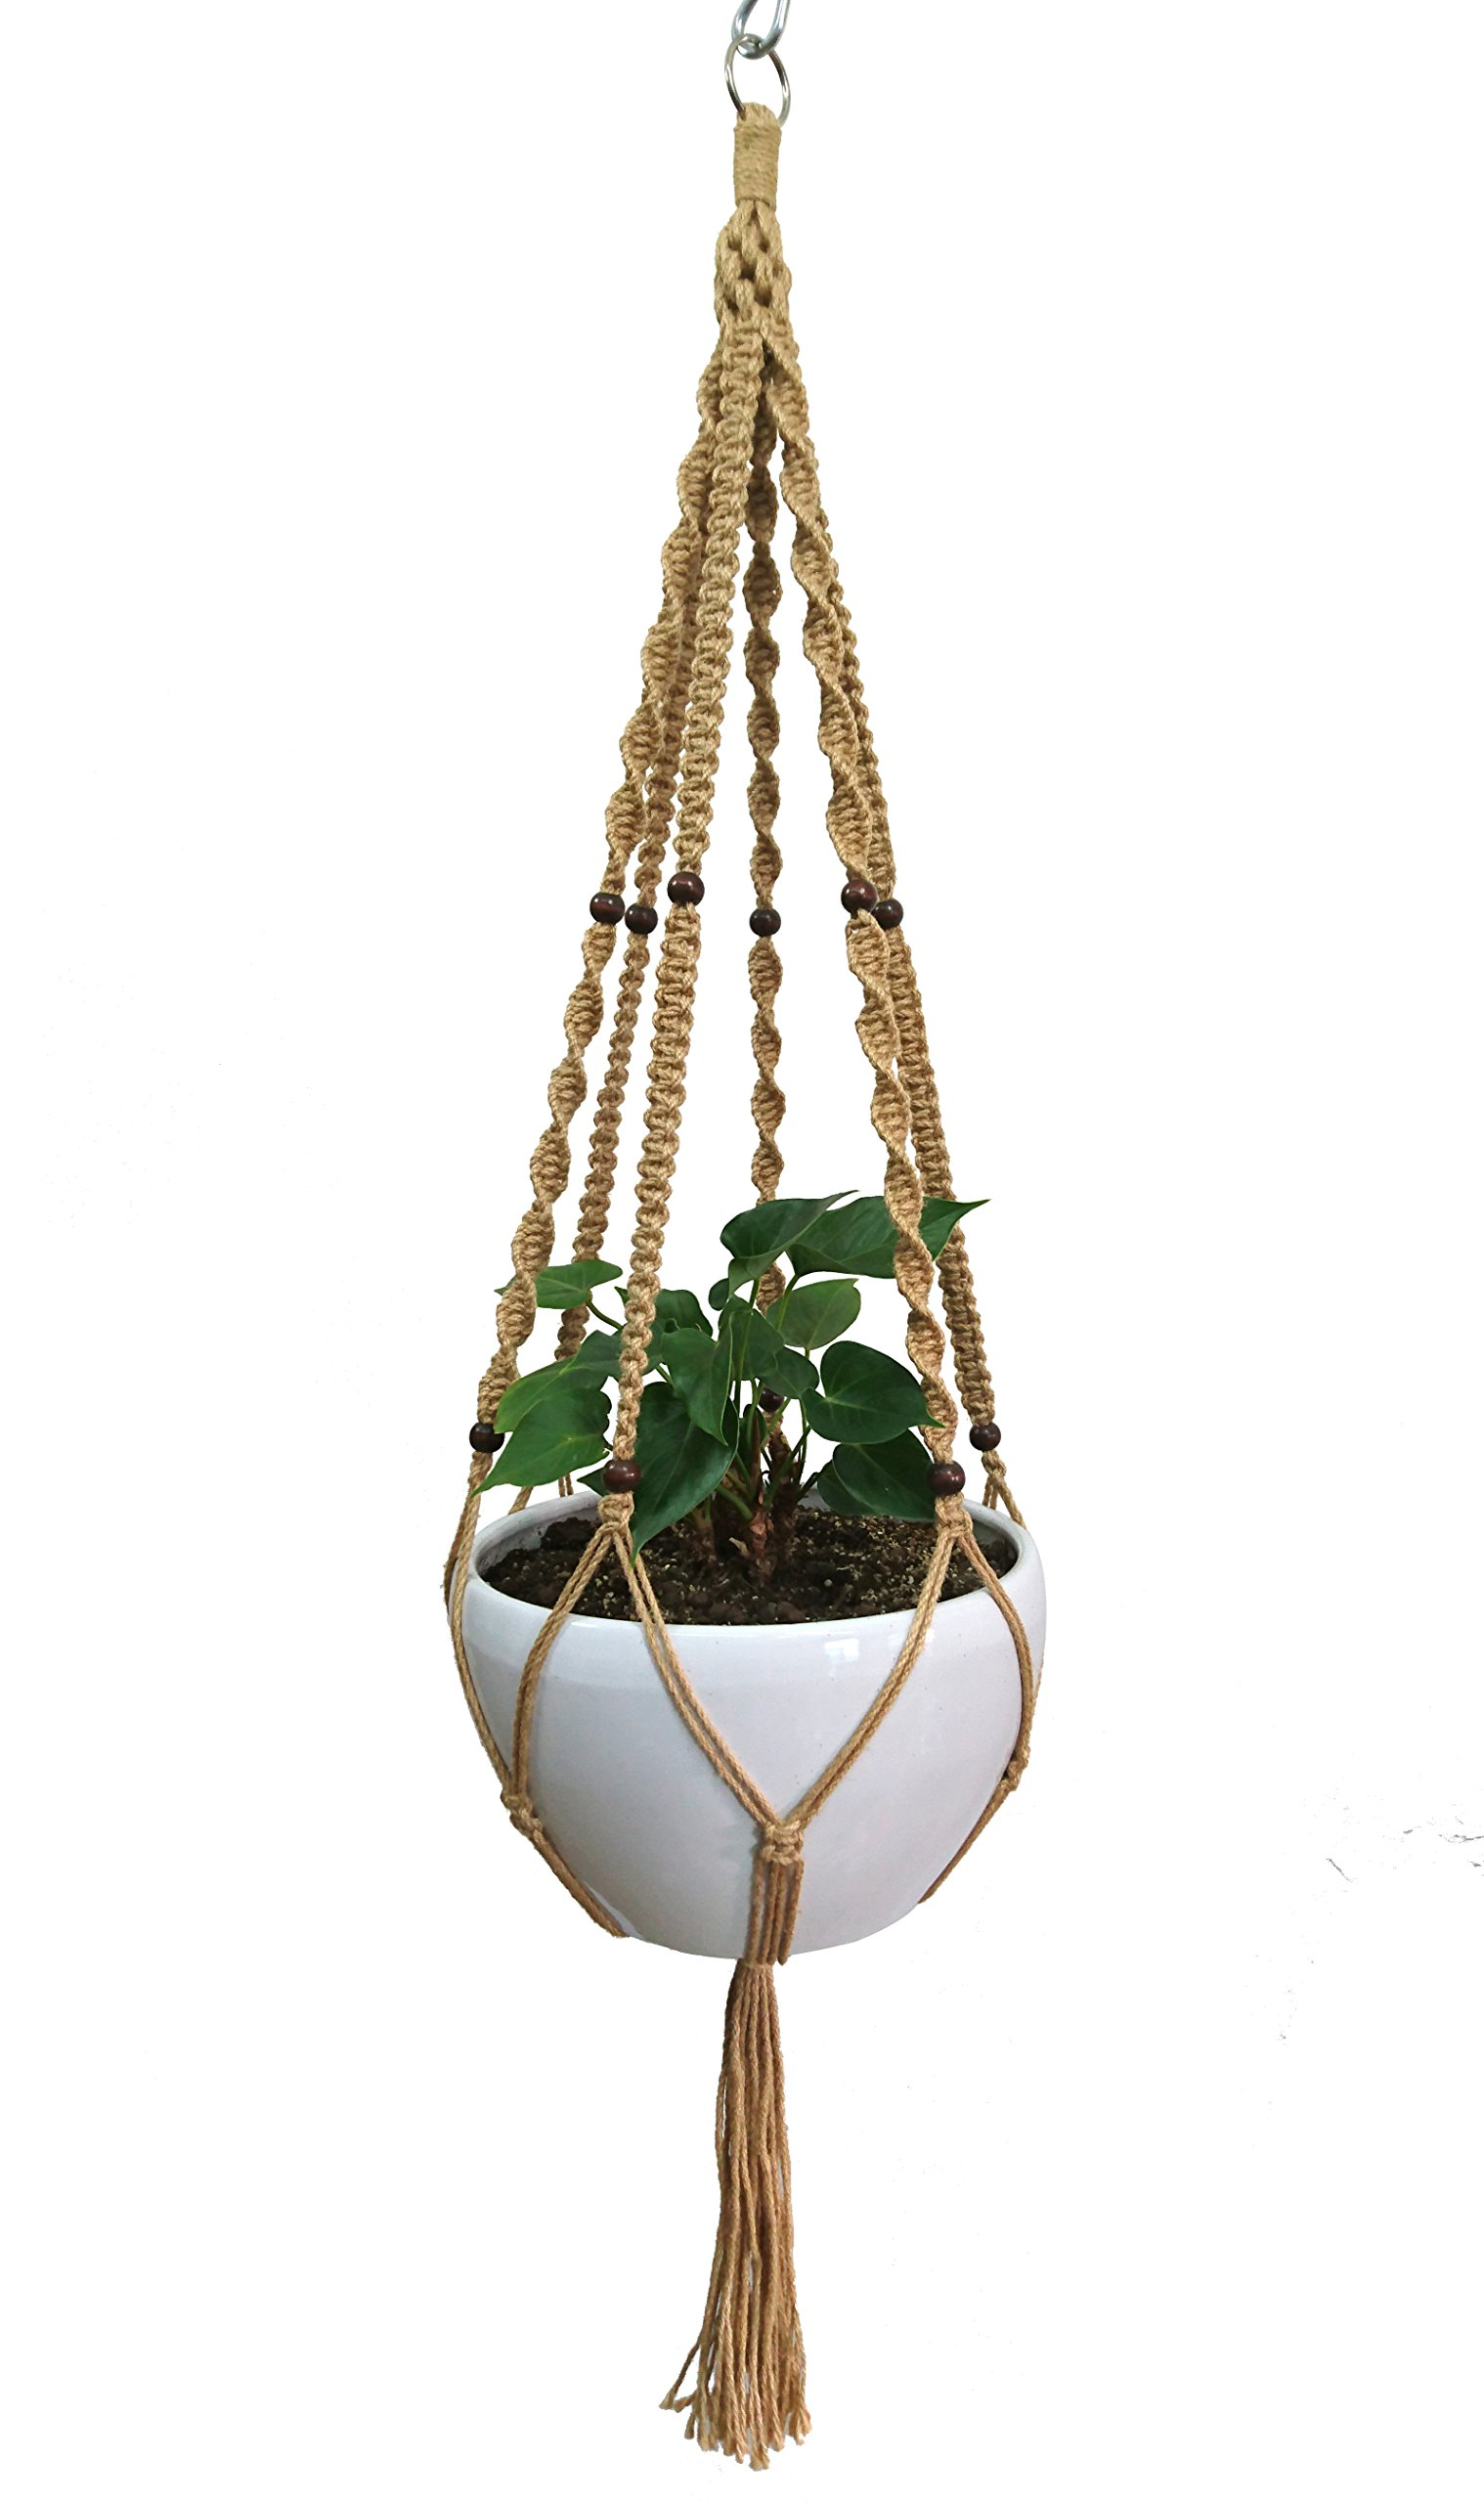 Plant Hanger Macrame Natural Hemp Rope Plant Hanger 6 Legs Plant Hanger 51 Inches For Indoor Outdoor, Living Room, Kitchen, Deck, Patio, High and Low Ceiling with size of 10-12 inches WITHOUT THE POT